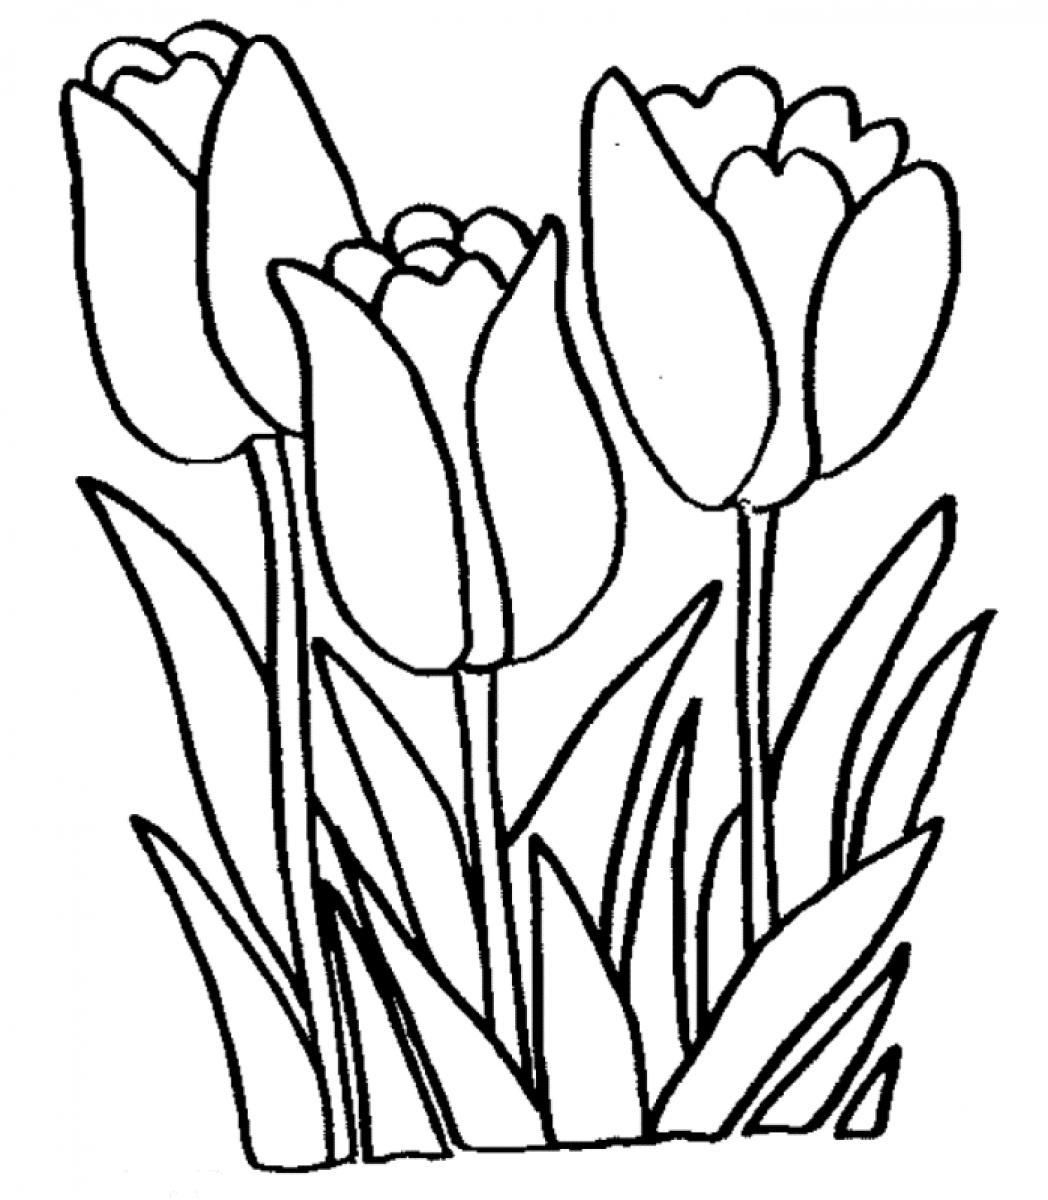 Free Tulip Coloring Pages With Printable Tulip Coloring Pages For - Free Printable Tulip Coloring Pages